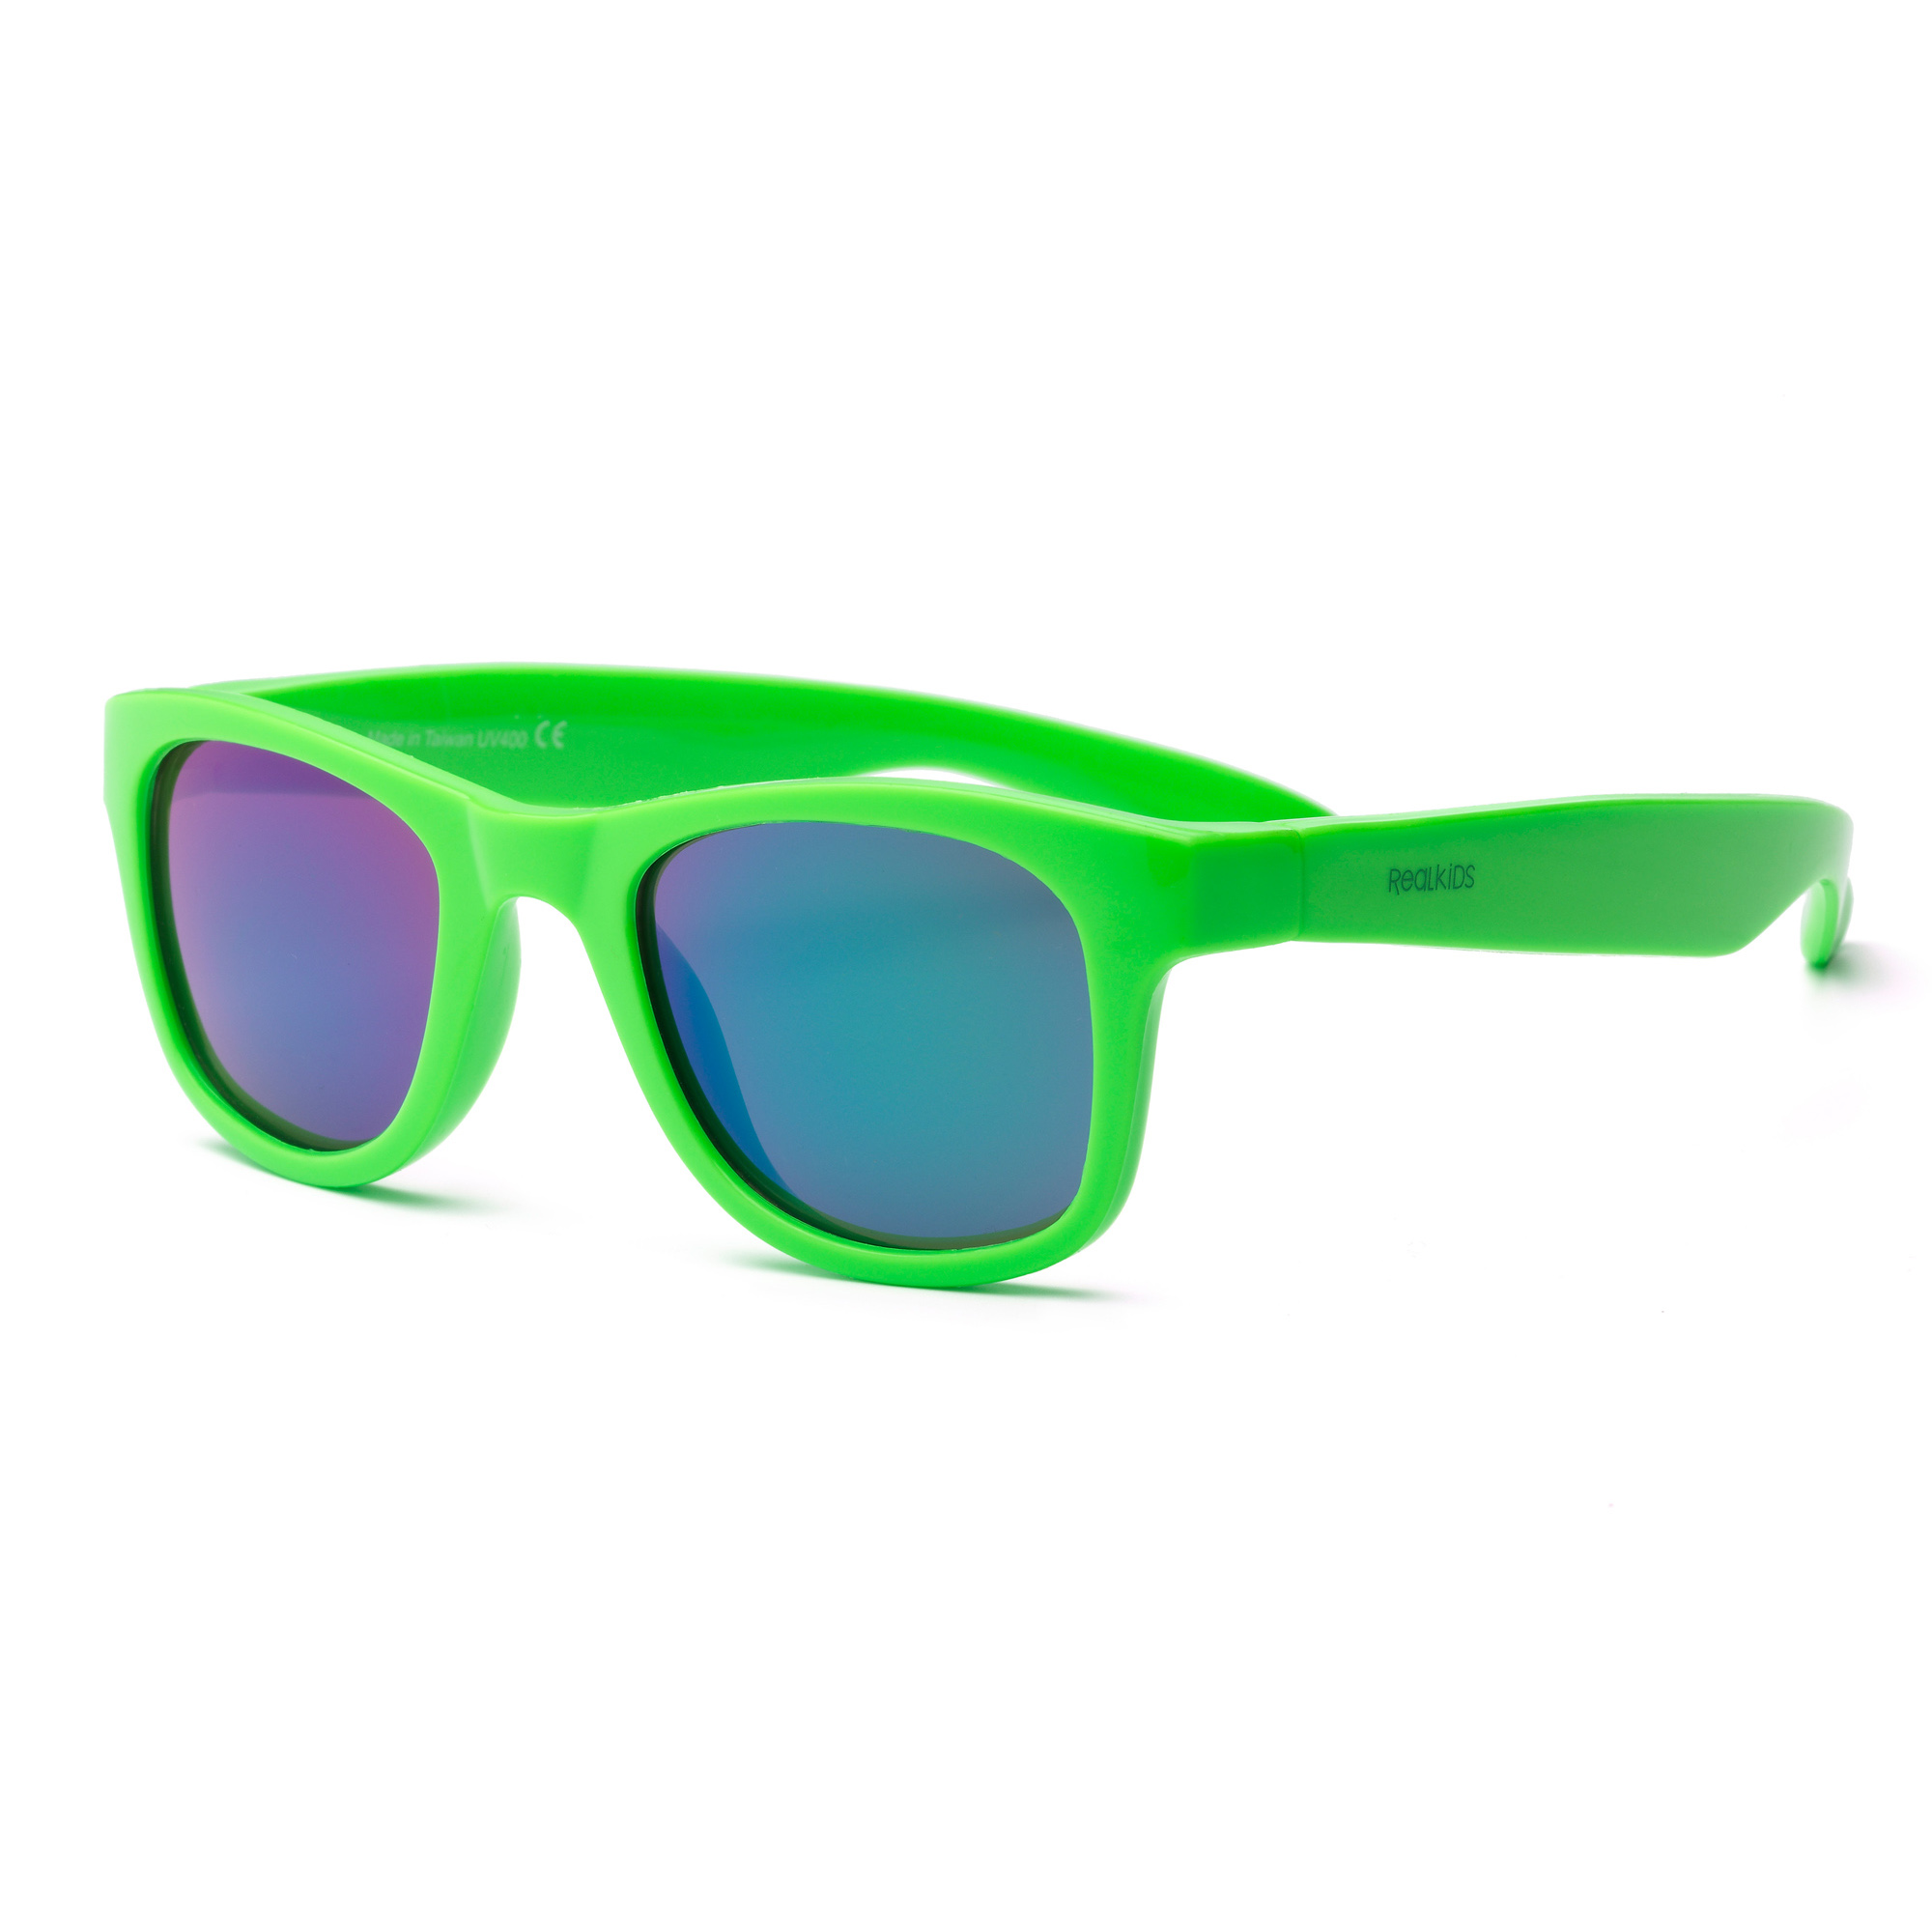 a8e13d6e4a8 Surf Sunglasses for Toddlers